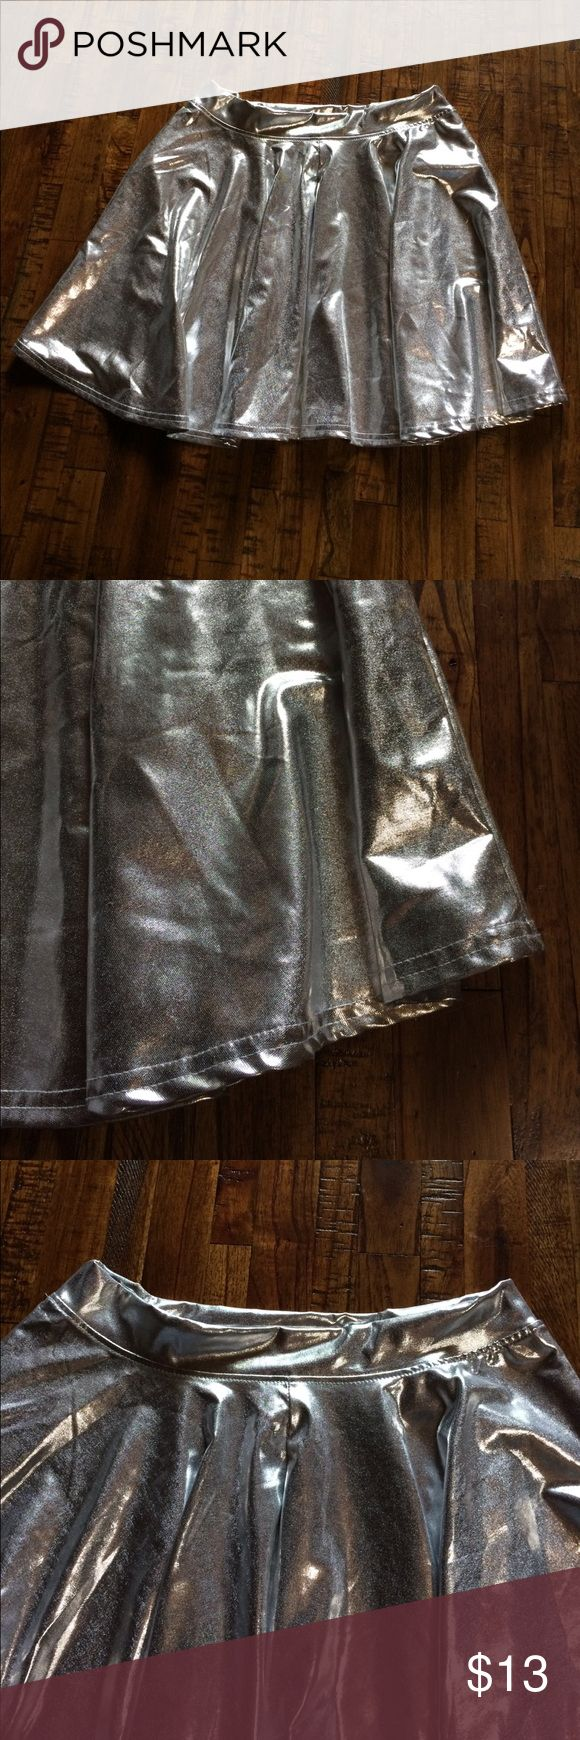 Gattaca Skirt Wear this to your next EDM festival or dress up as a space girl for Halloween! Space silver skater skirt in excellent condition. Fits Small at best and the perfect length without being too short. Measures 14 in from bottom of waistband to hem. Brand is HDE. HDE Skirts Circle & Skater